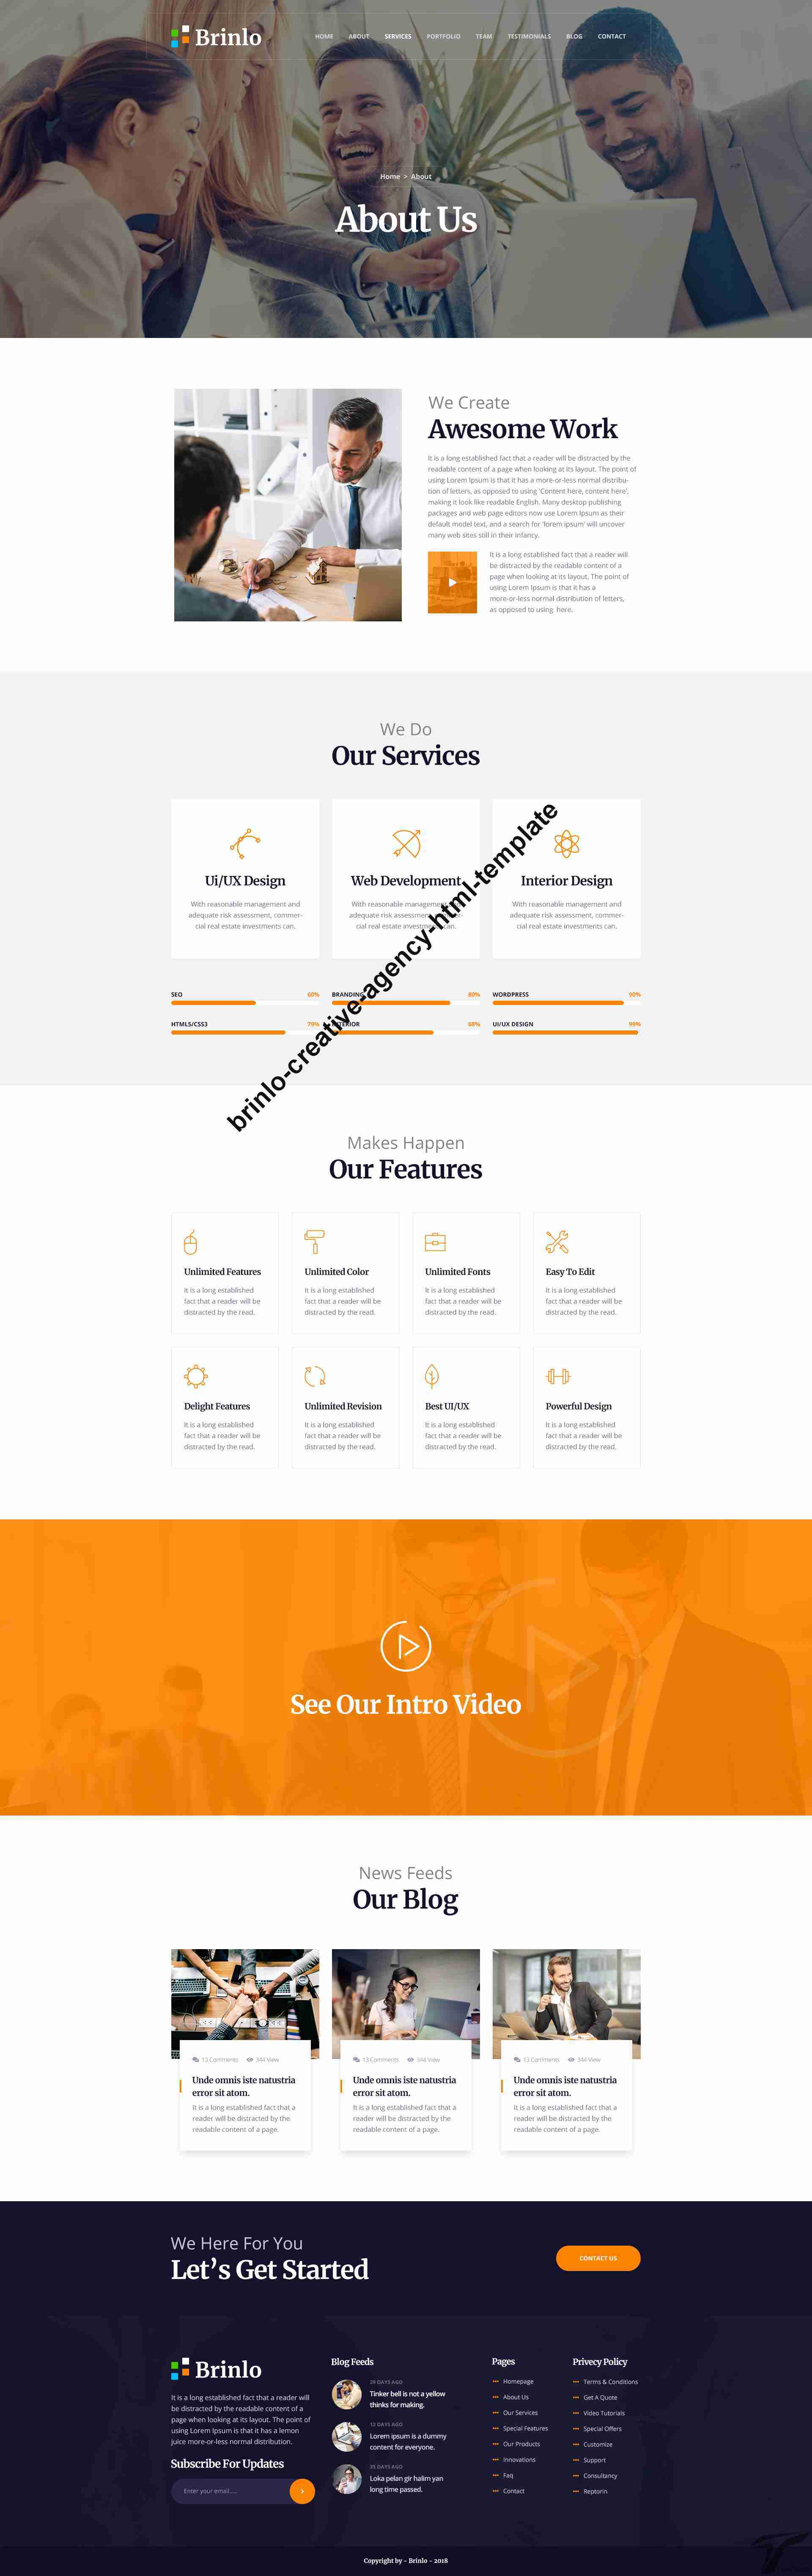 https://images.besthemes.com/images/h1_brinlo-creative-agency-html-template3-_-254099727/prevew_images/02_about.jpg